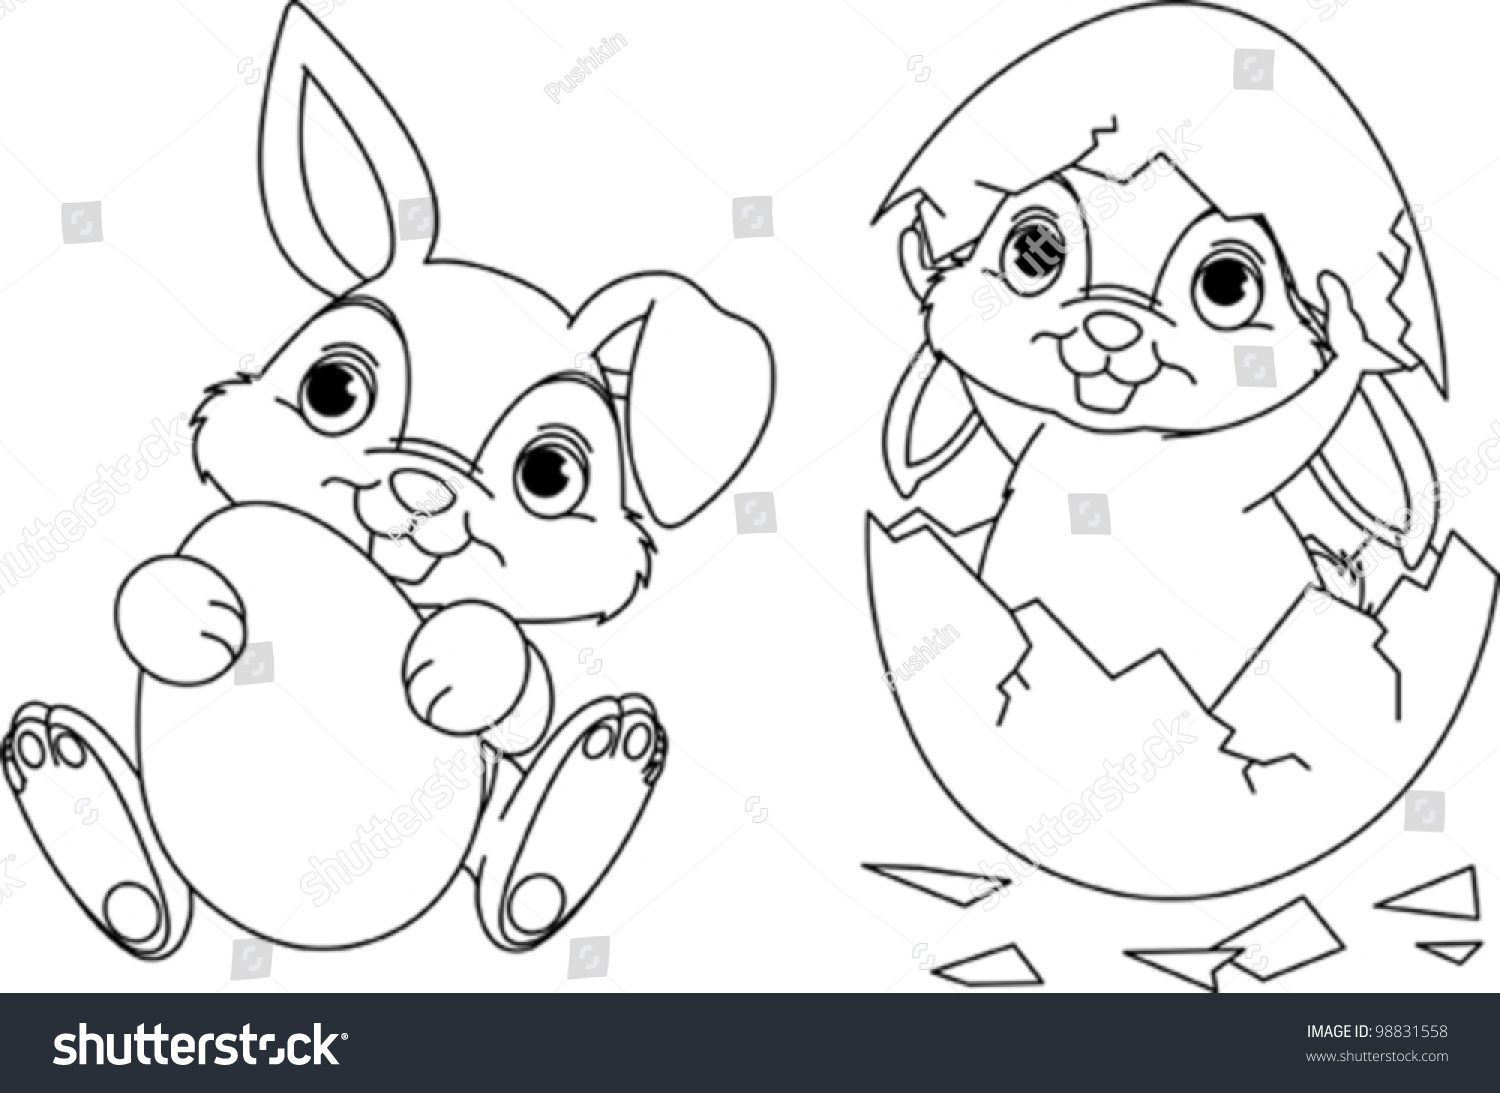 Coloring pages bunny